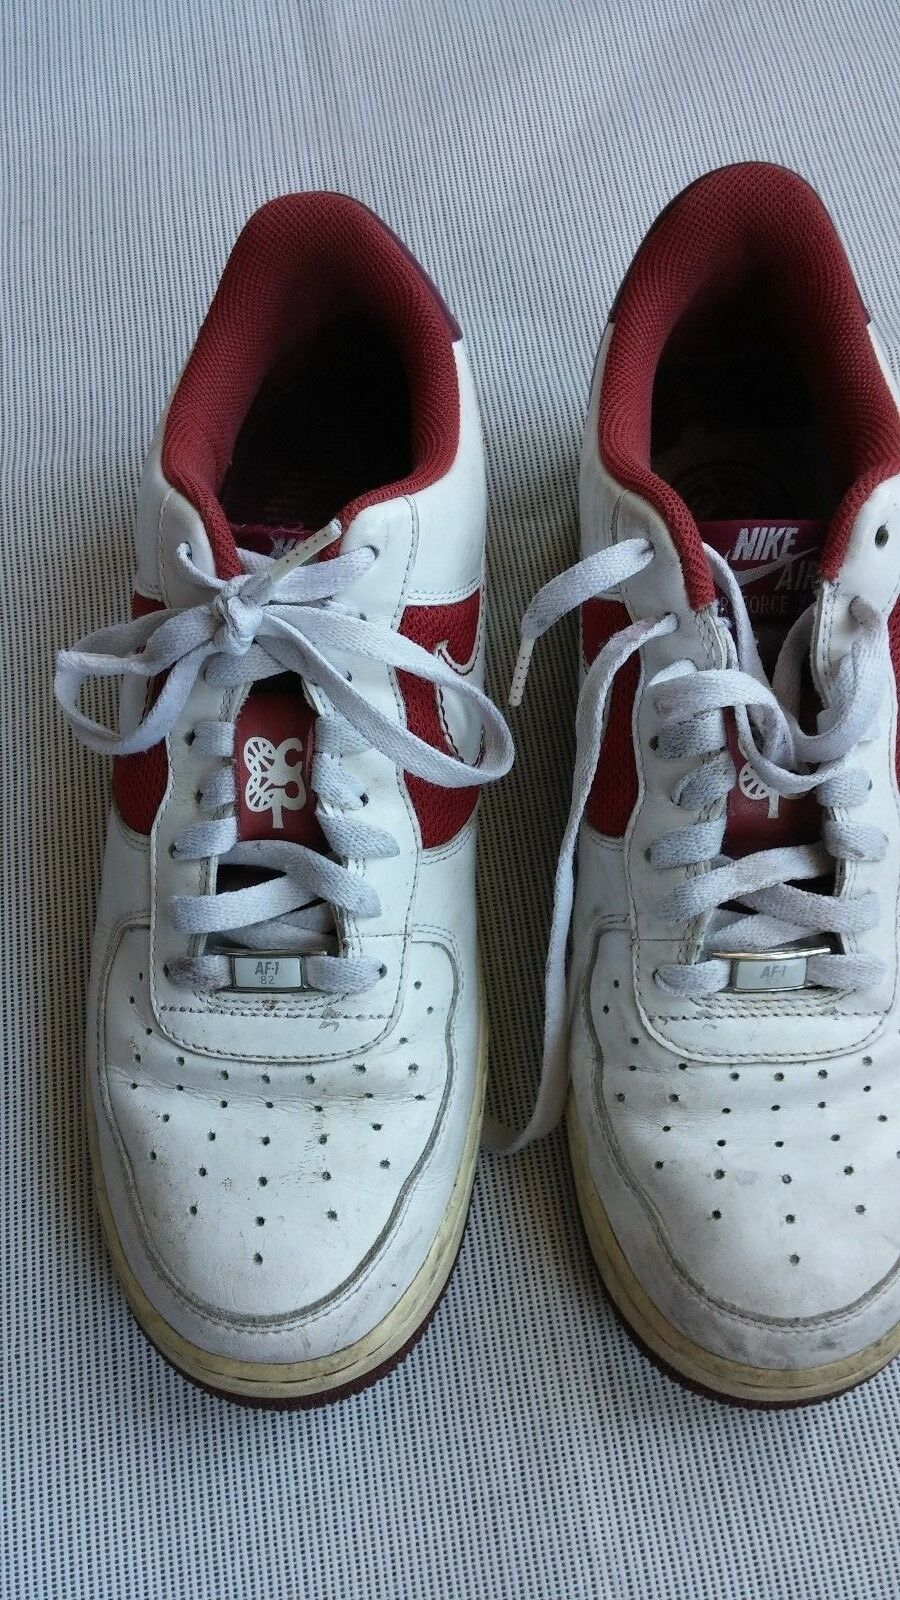 Comfortable and good-looking Nike Air Force XXV SIZE 11 Baltimore Cloverdale Park Court 410 Rare